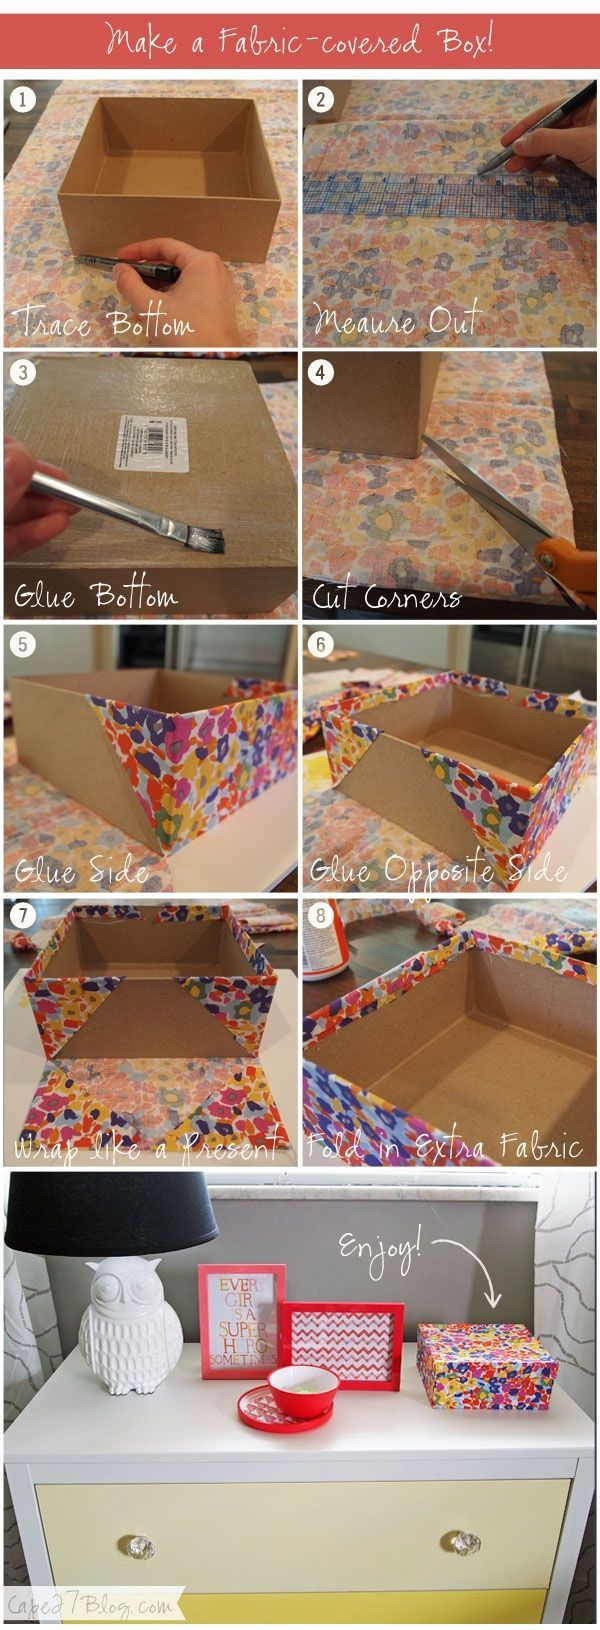 DIY Fabric Covered Box: